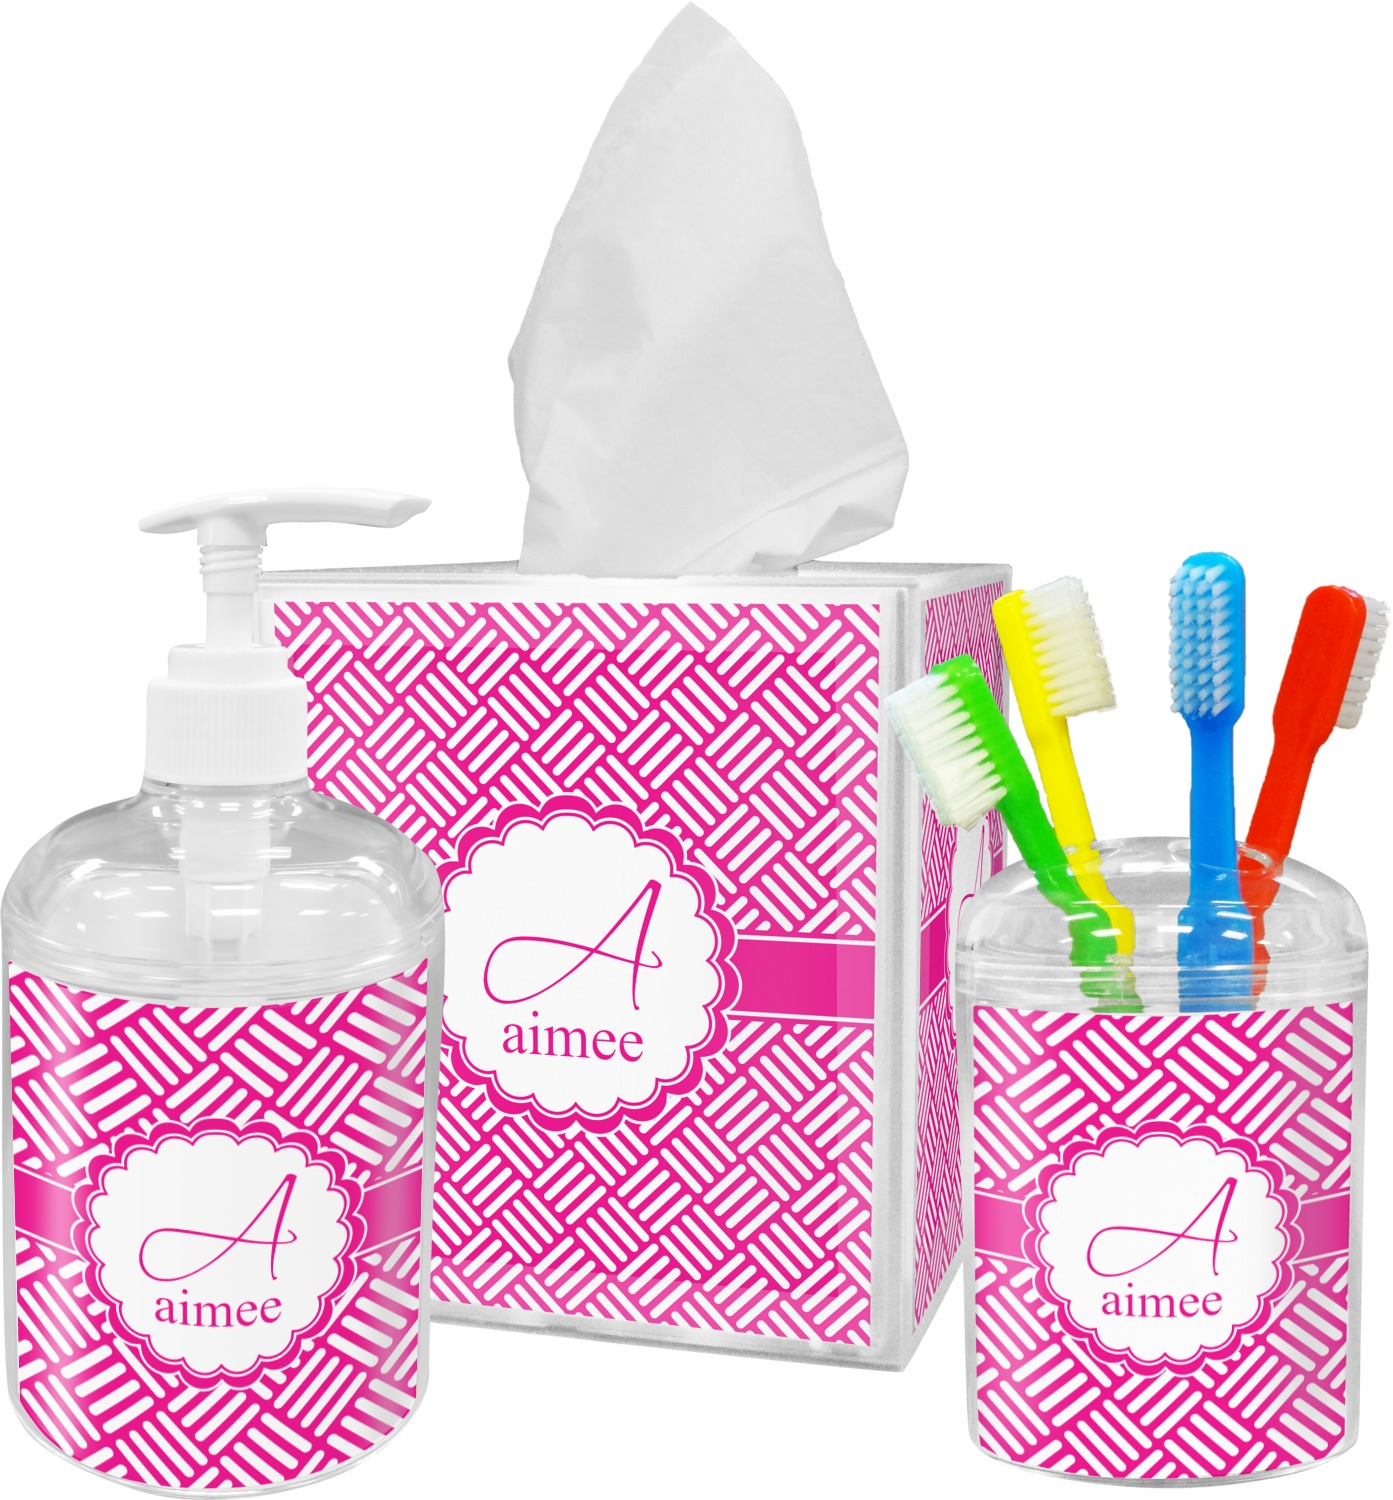 hashtag toothbrush holder personalized youcustomizeit